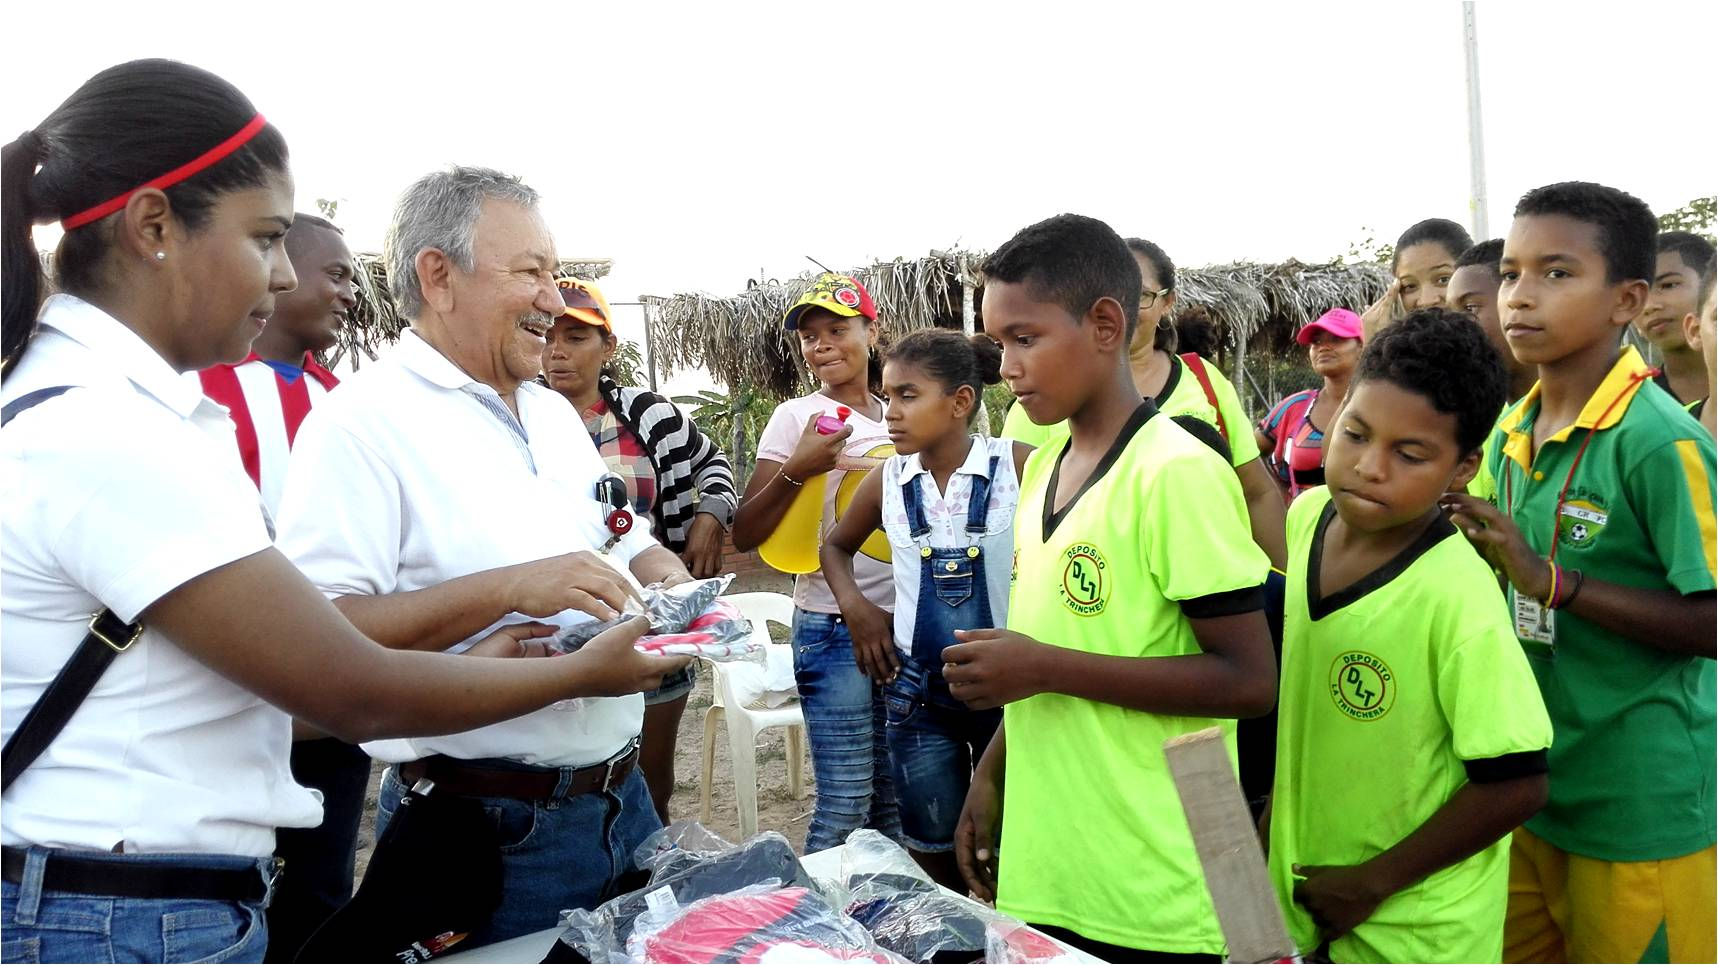 Rafael García, Drummond Ltd.'s Coordinator of Community Relations handing out kit to the boys of Sporting Chiriguaná